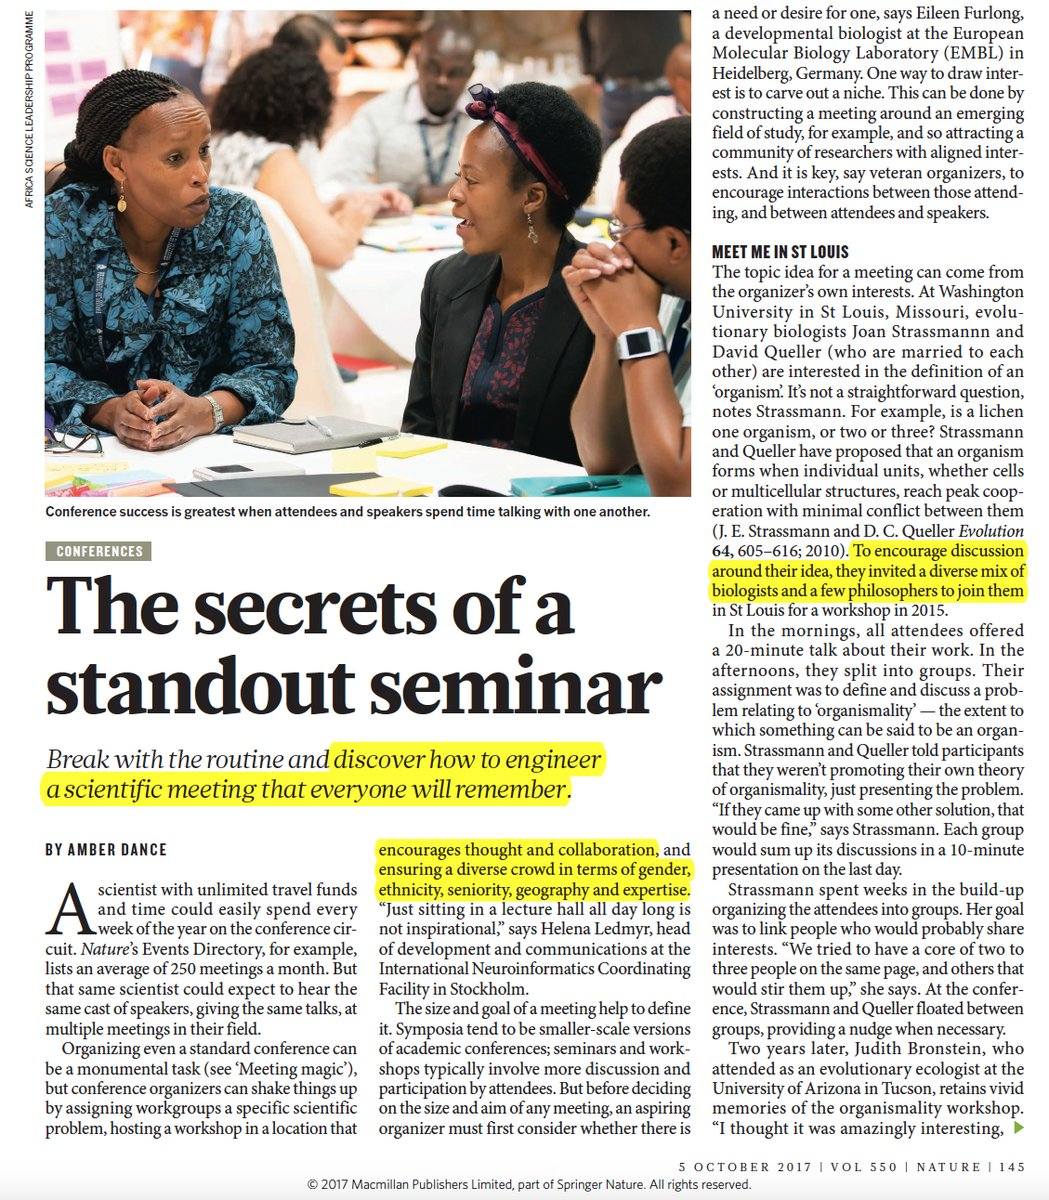 Nature - the secrets of a standout seminar